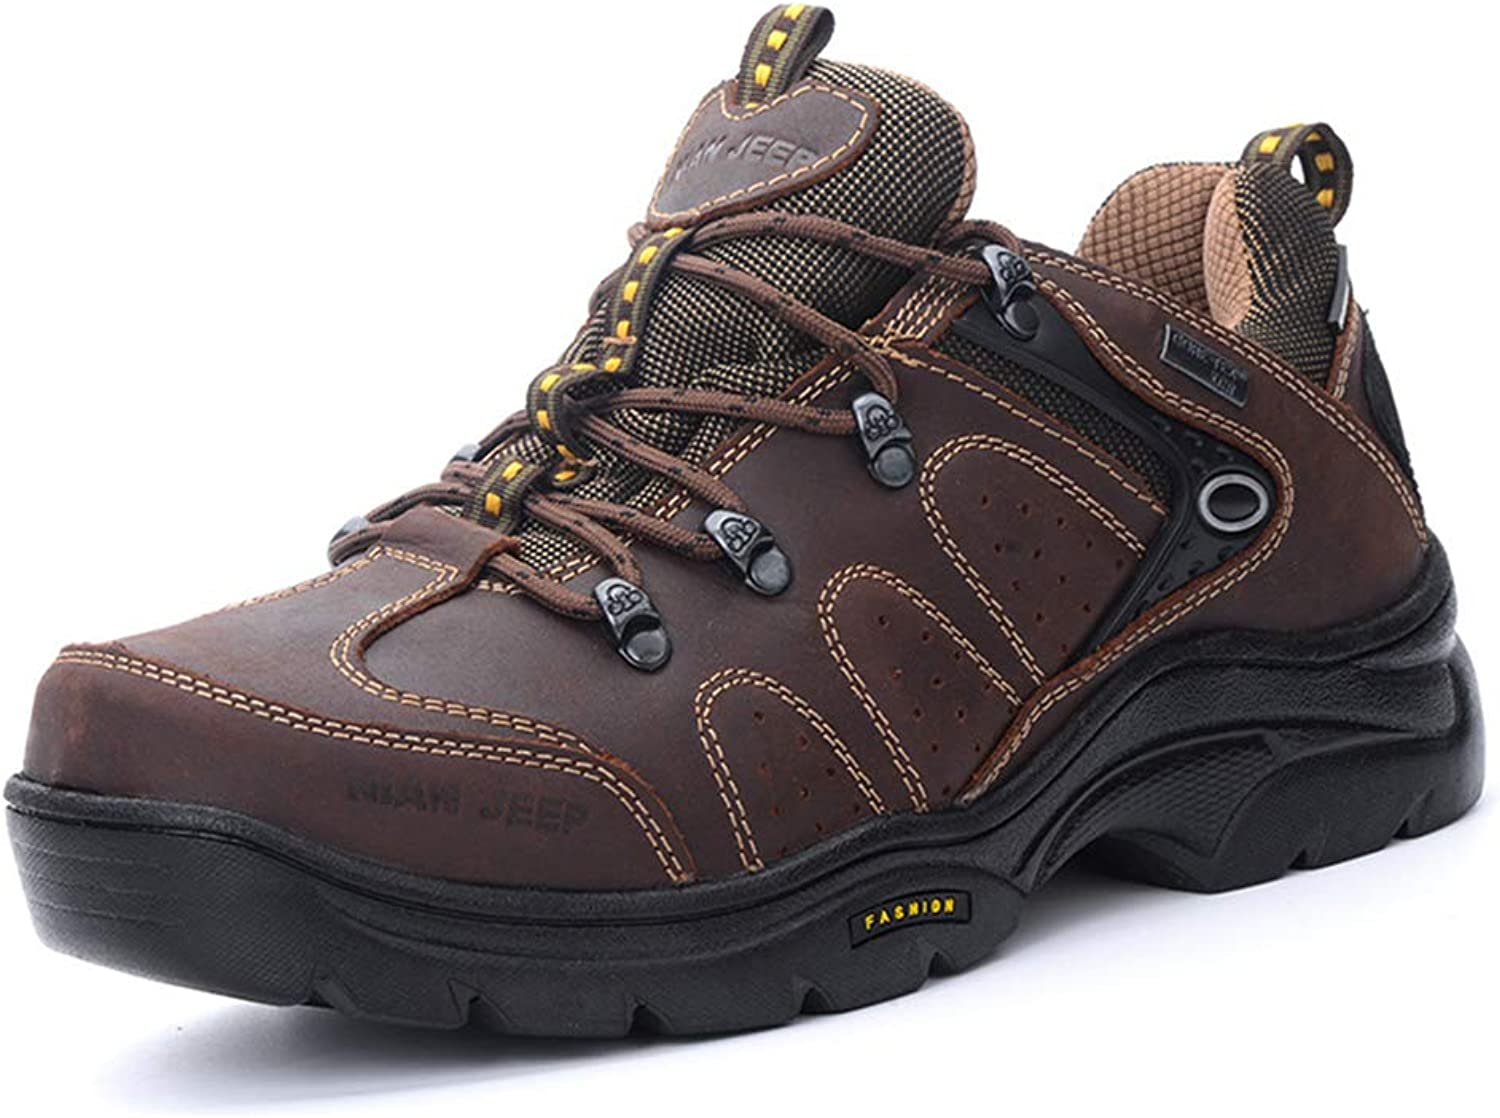 Men's Outdoor shoes Fall Winter Low-Top Hiking shoes Non Slip Wear-Resistant Camping shoes Dark Brown Black,A,39